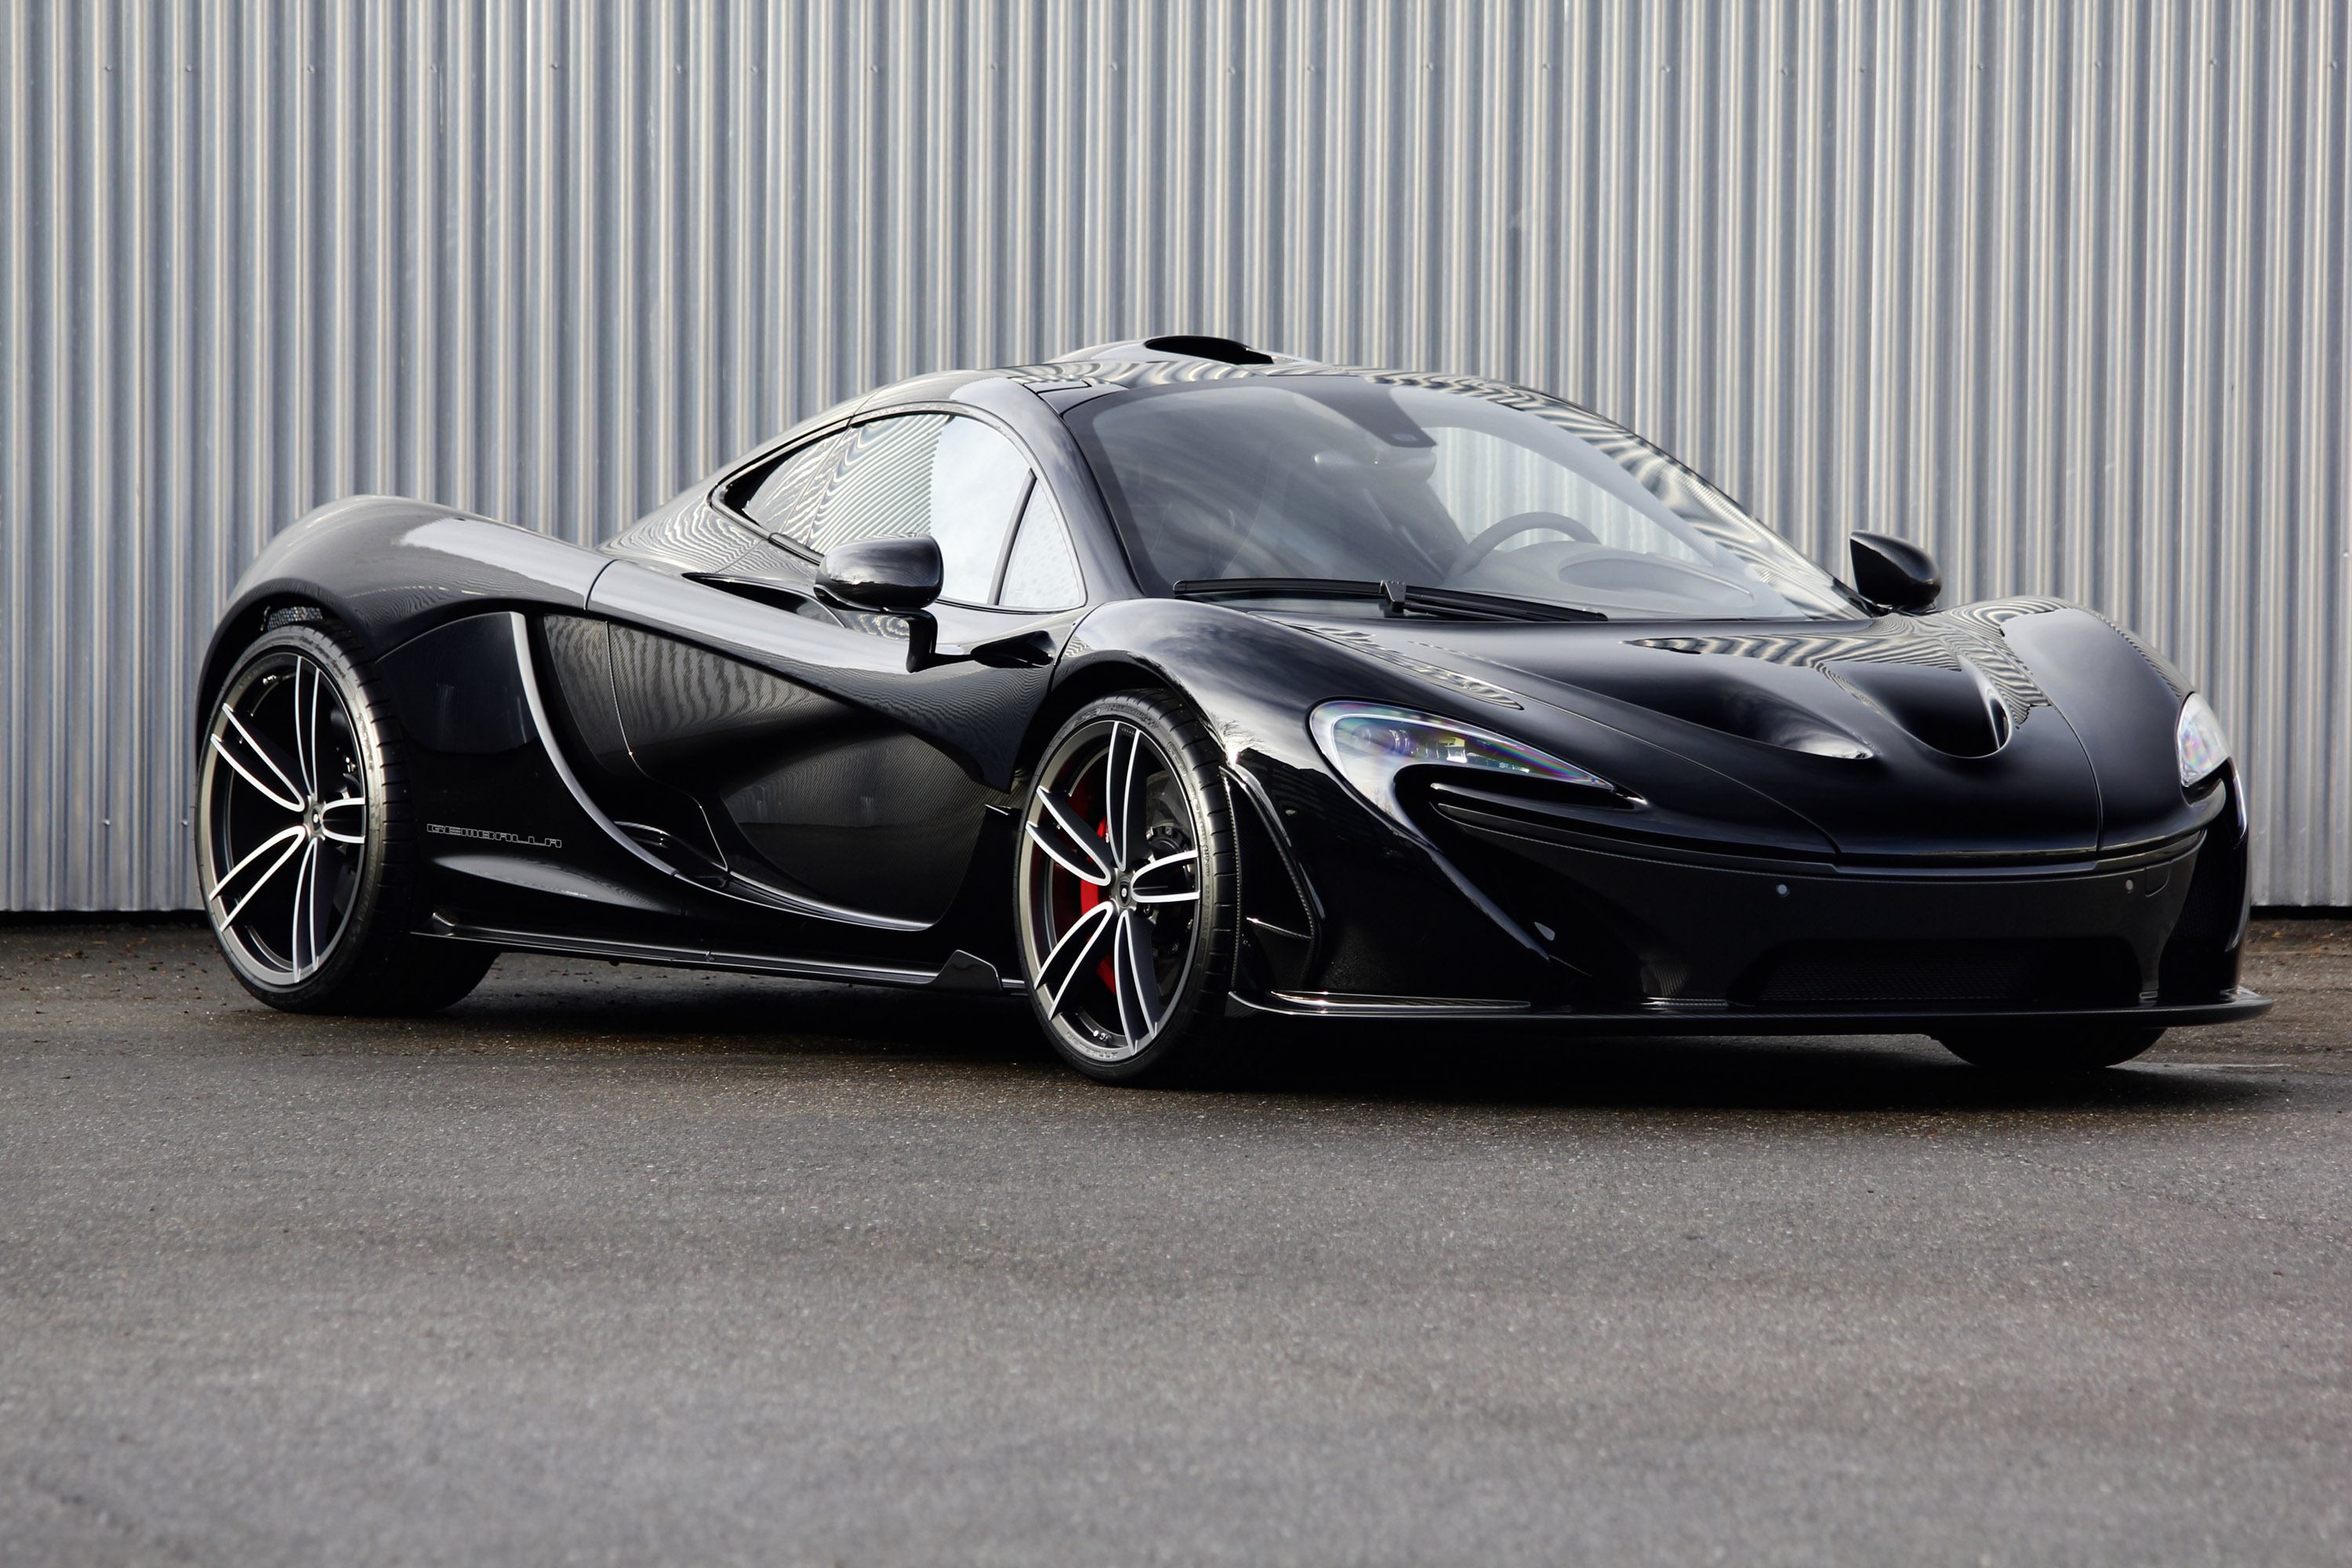 Gemballa With The First Ever Wheels For The Mclaren